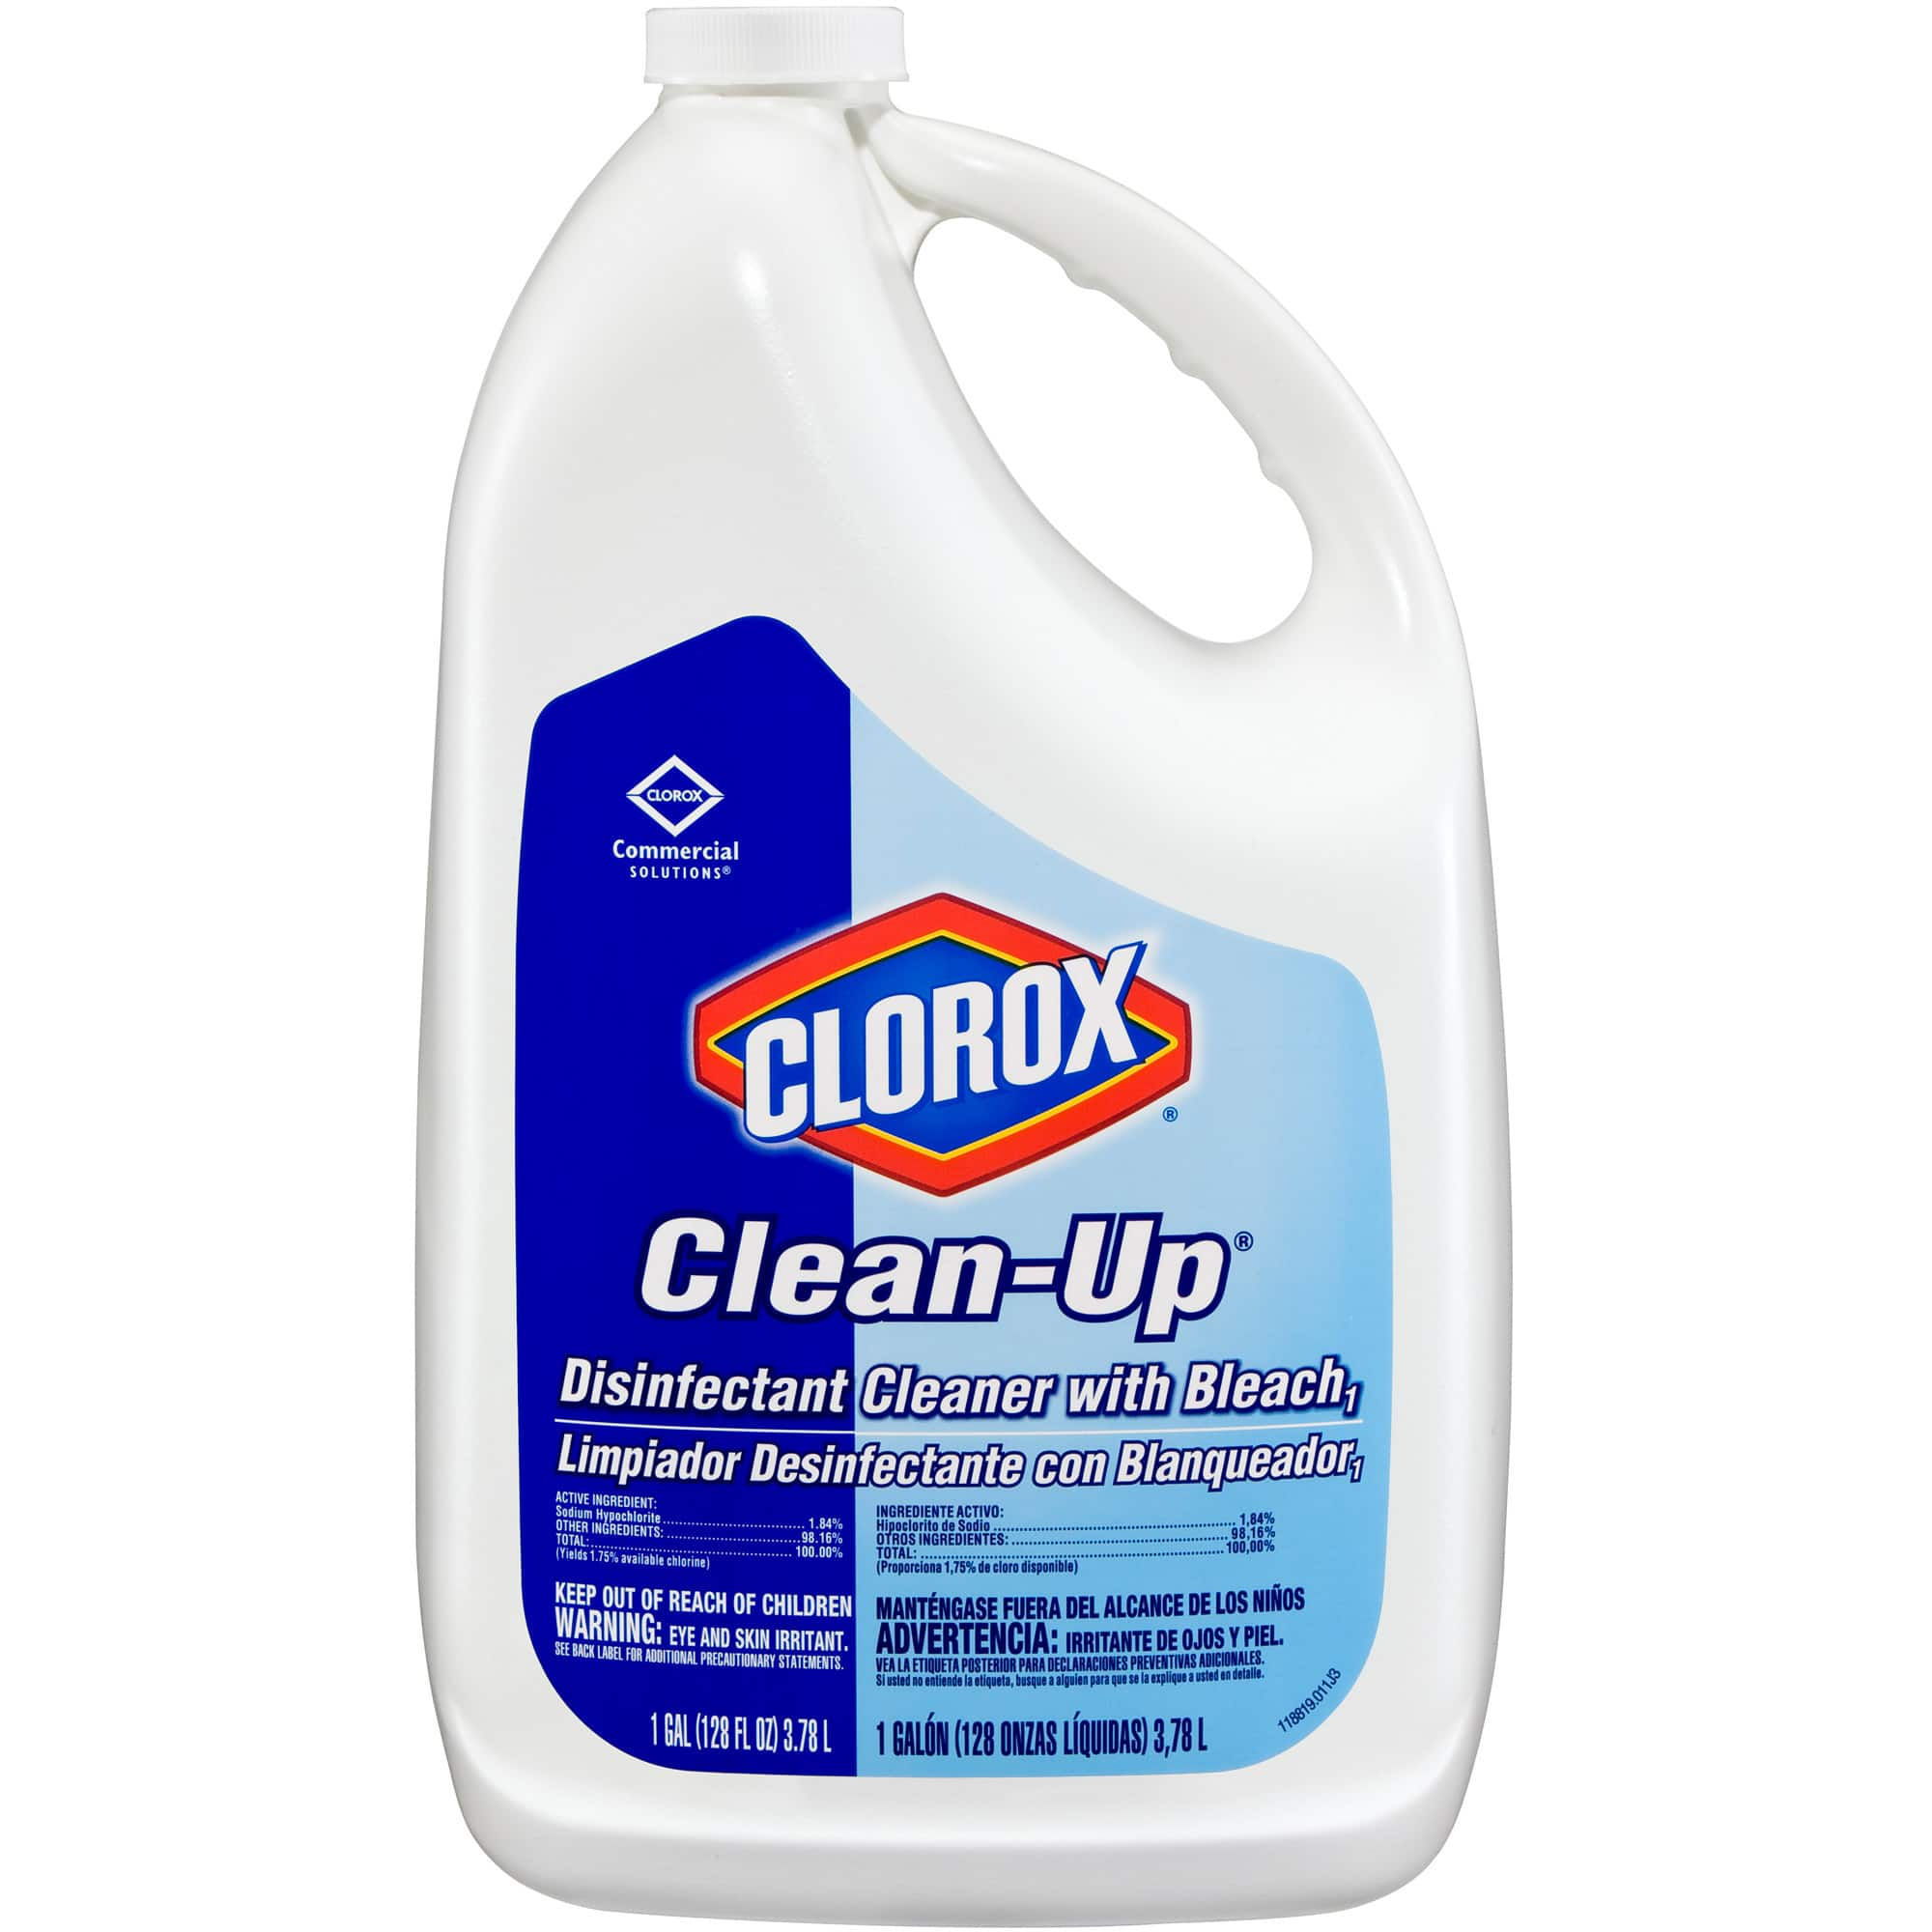 Clorox Commercial Solutions Clorox Clean-Up All Purpose Cleaner with Bleach - Original, 128 Ounce Refill Bottle (35420) $13.21